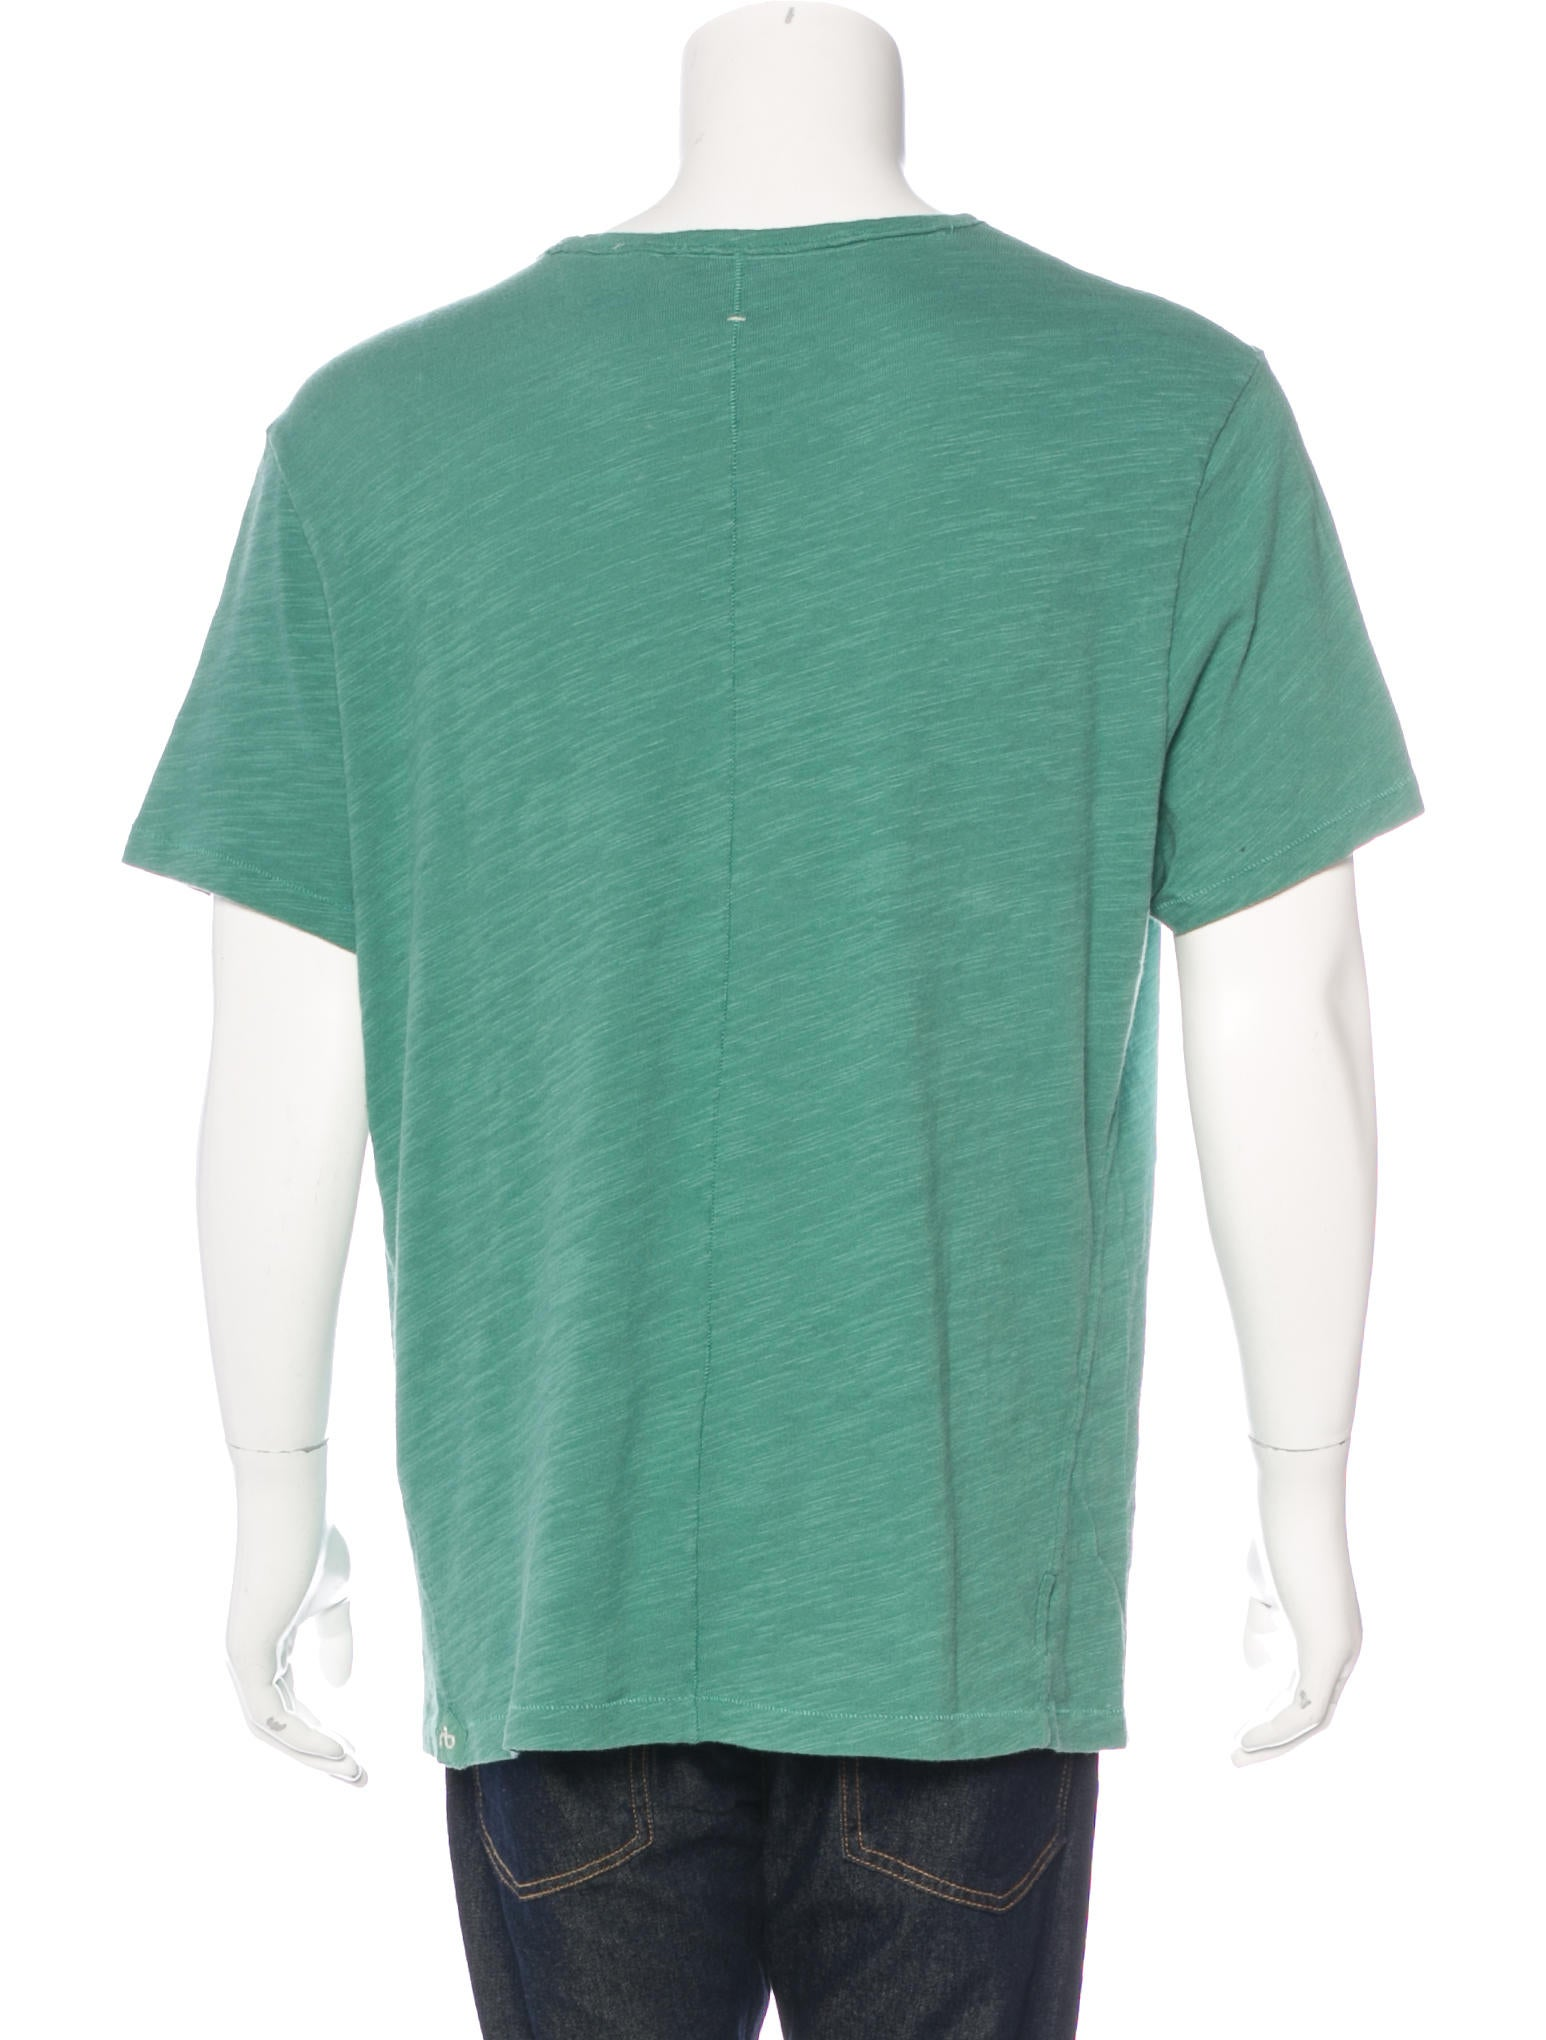 Rag bone scoop neck t shirt clothing wragb67291 for Scoop neck t shirt